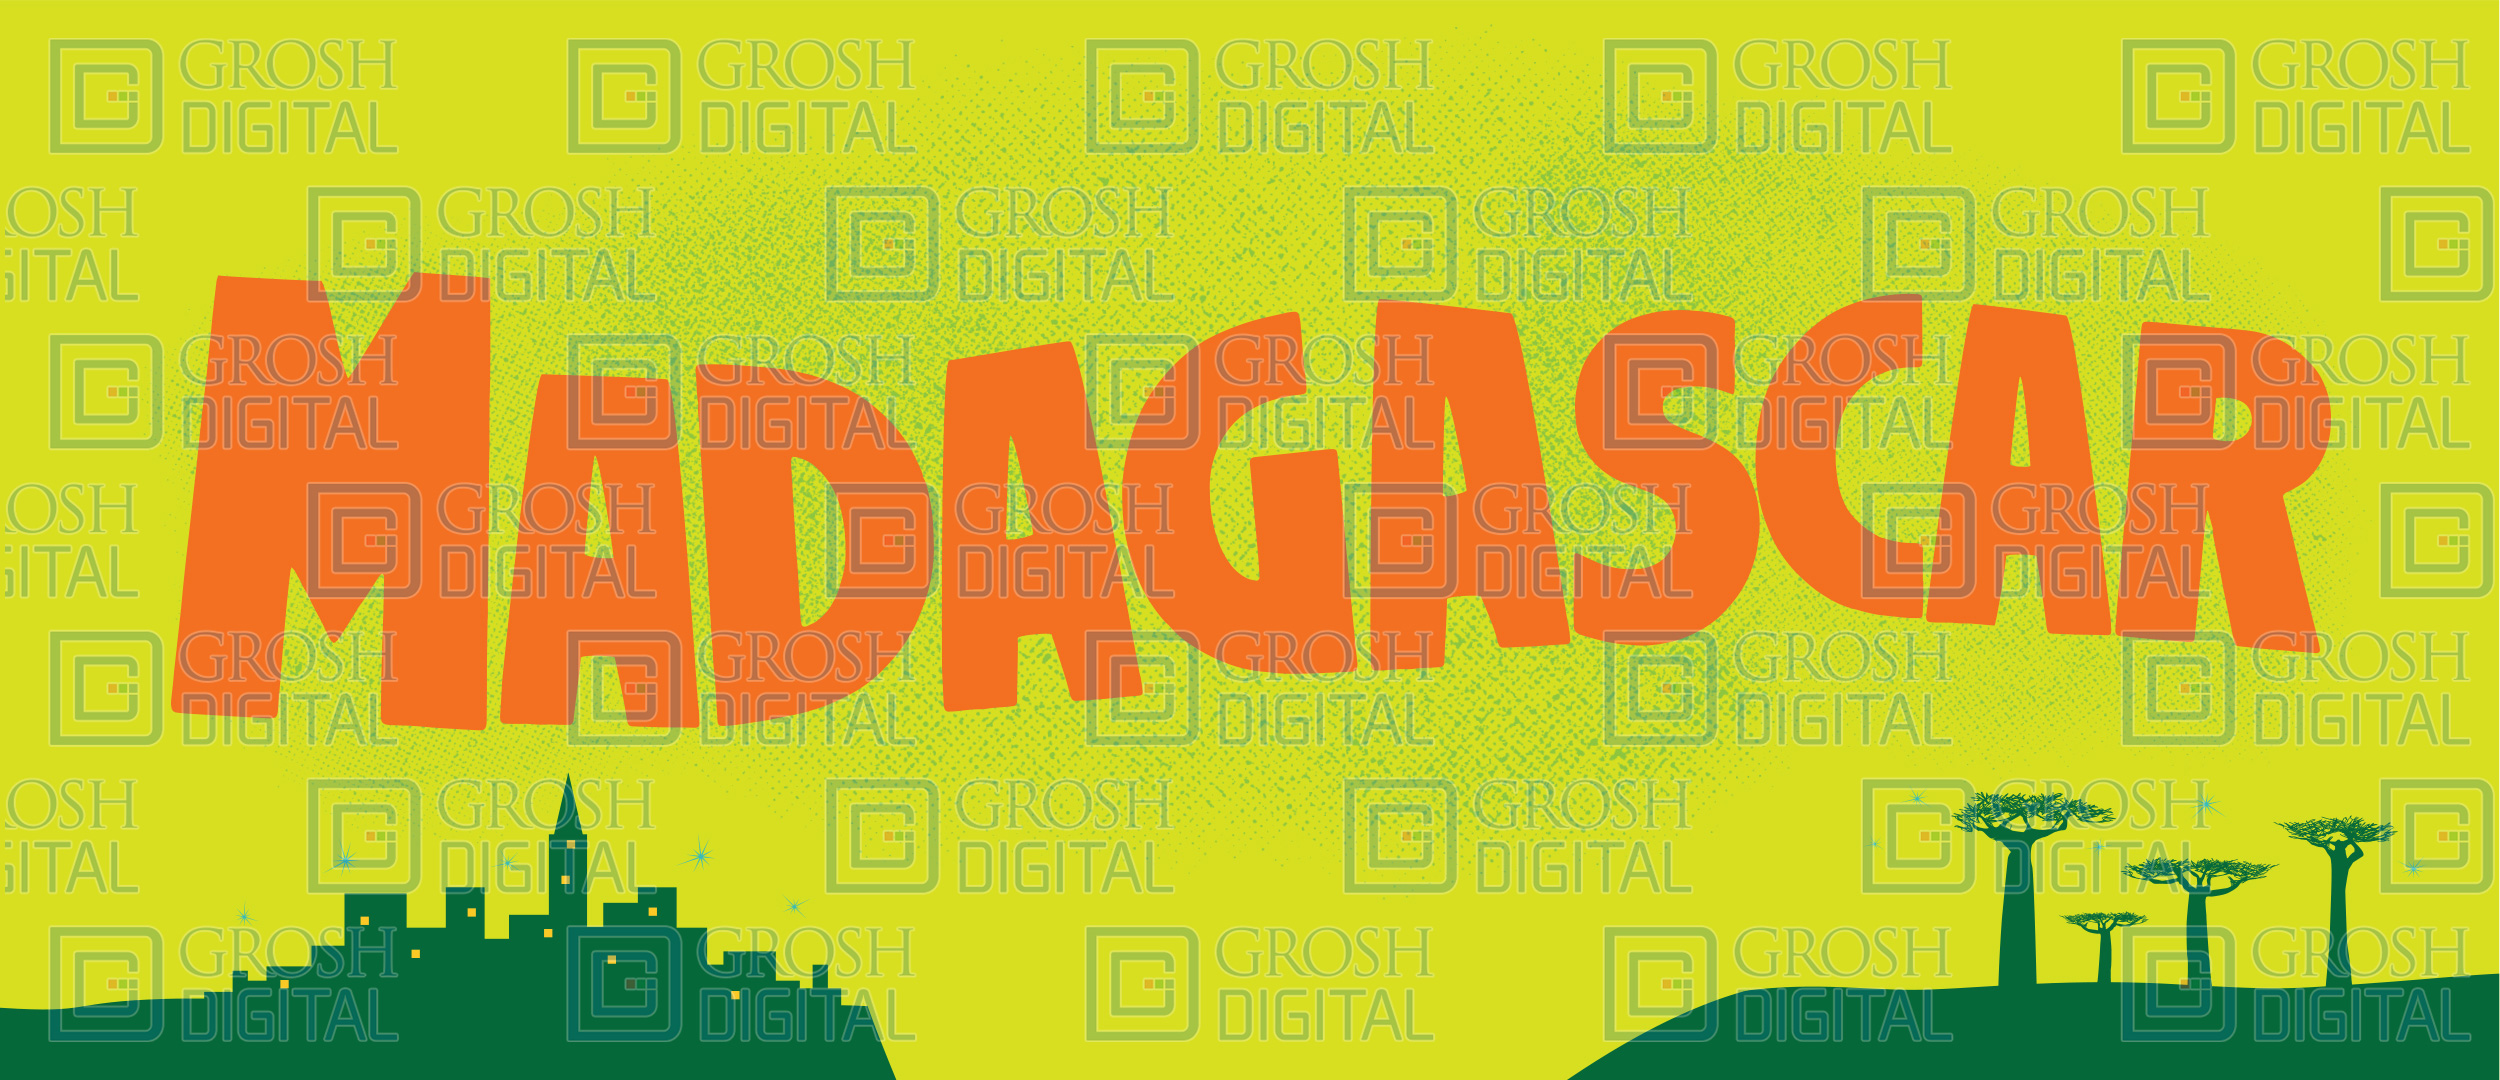 Madagascar Show Curtain Projected Backdrops Grosh Digital